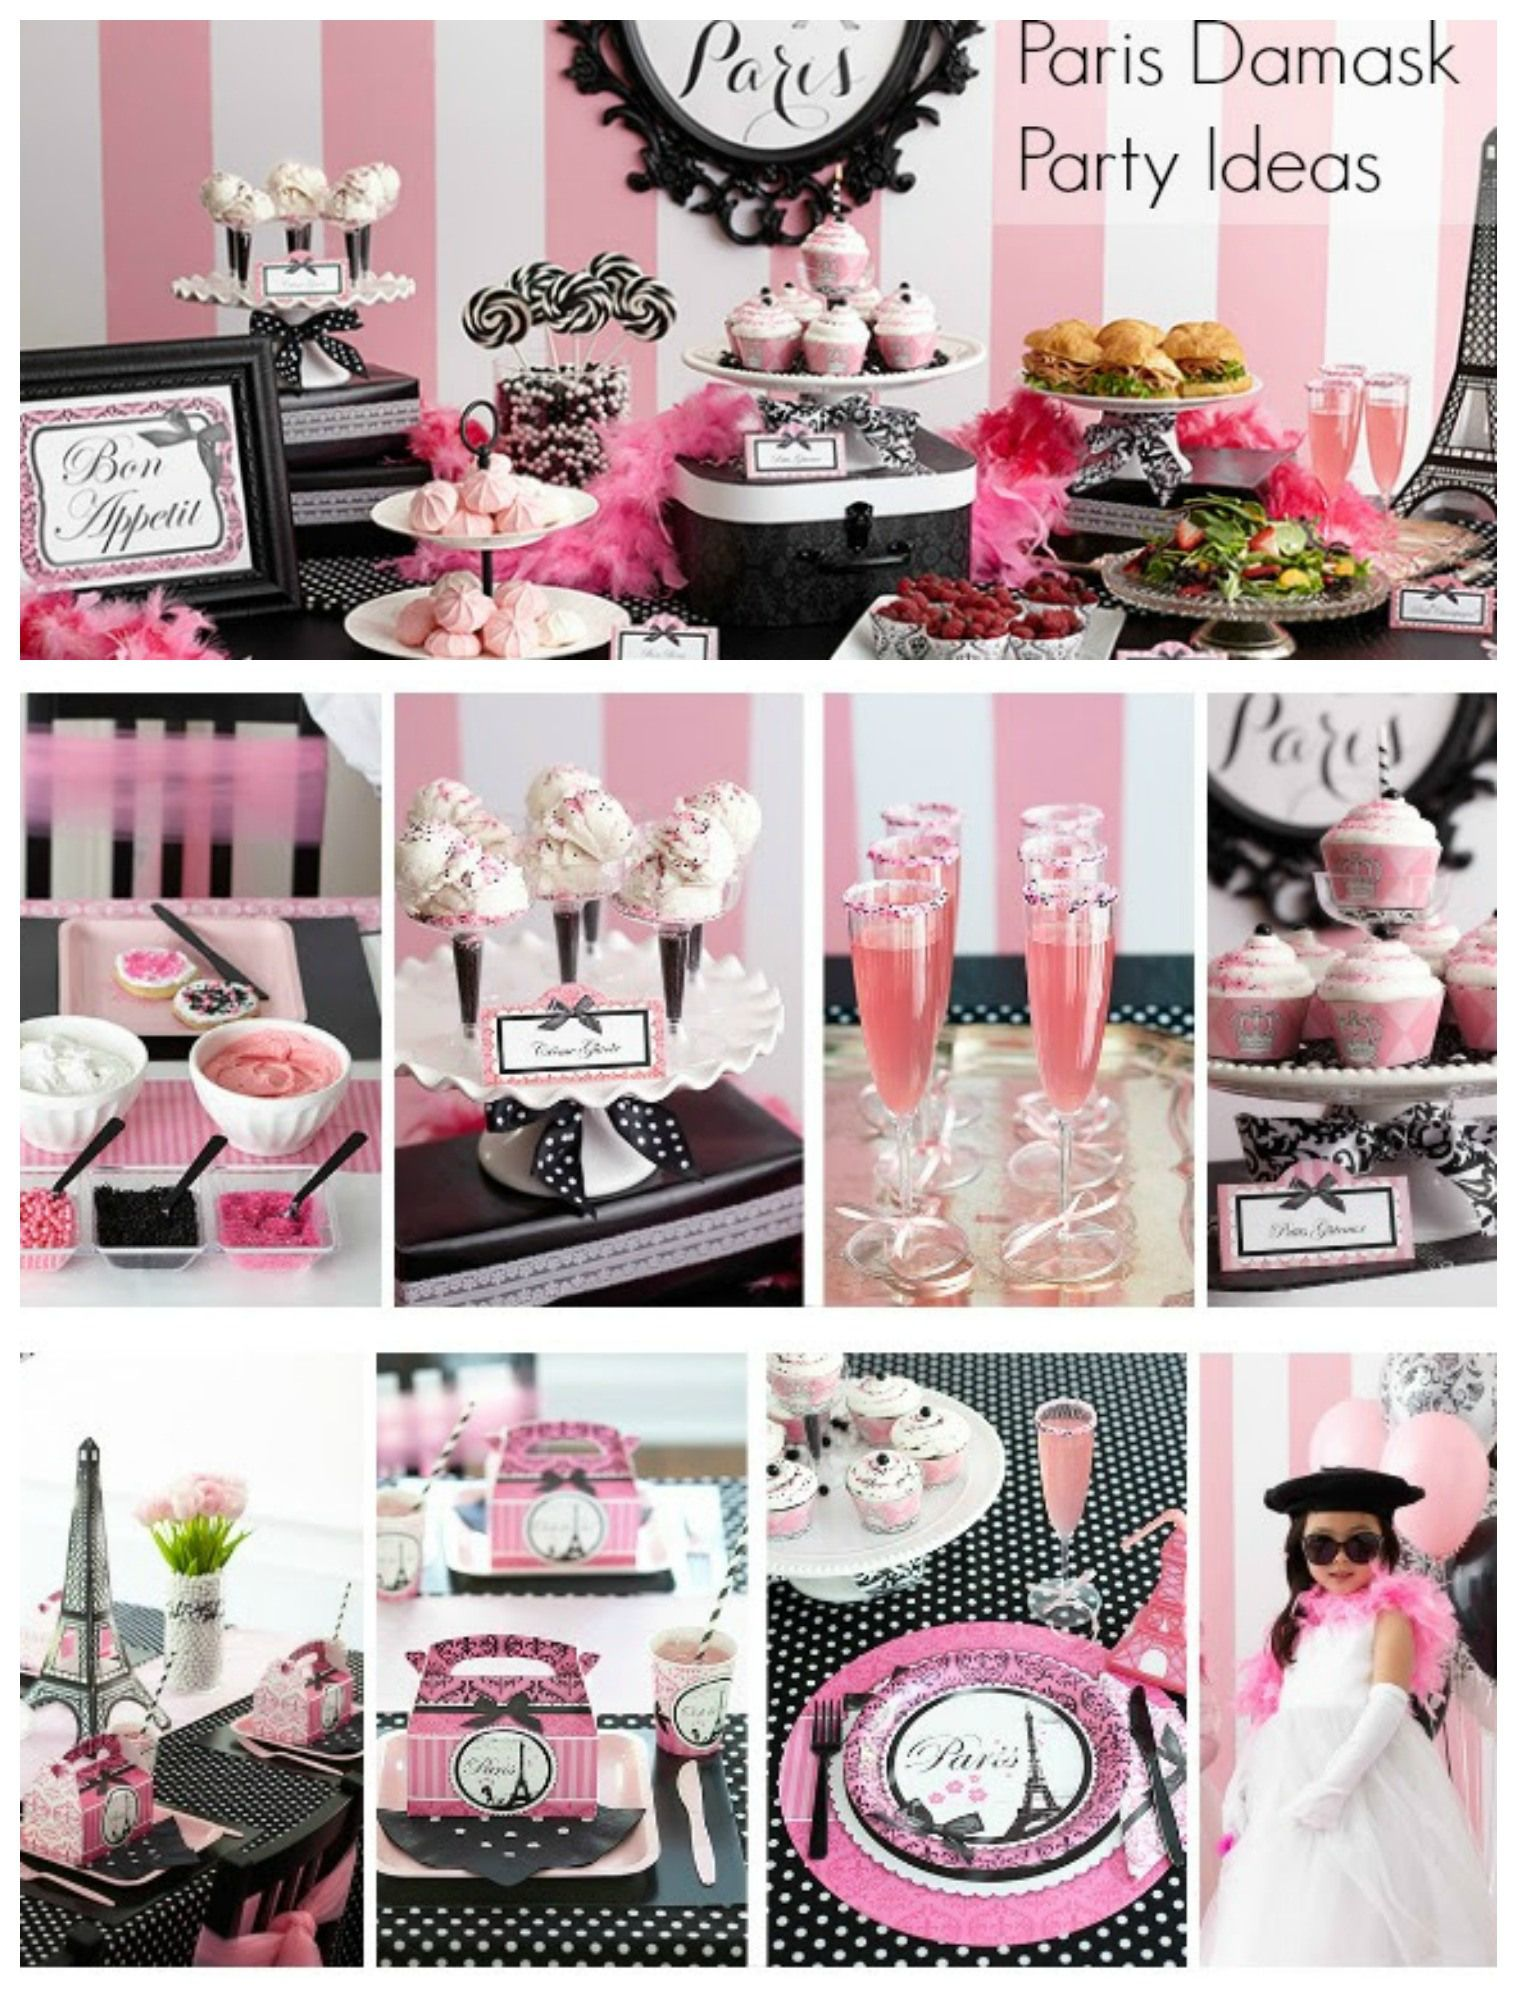 Pink And Black Paris Themed Birthday Party Ideas Parties365 Paris Birthday Parties Parisian Birthday Party Paris Themed Birthday Party